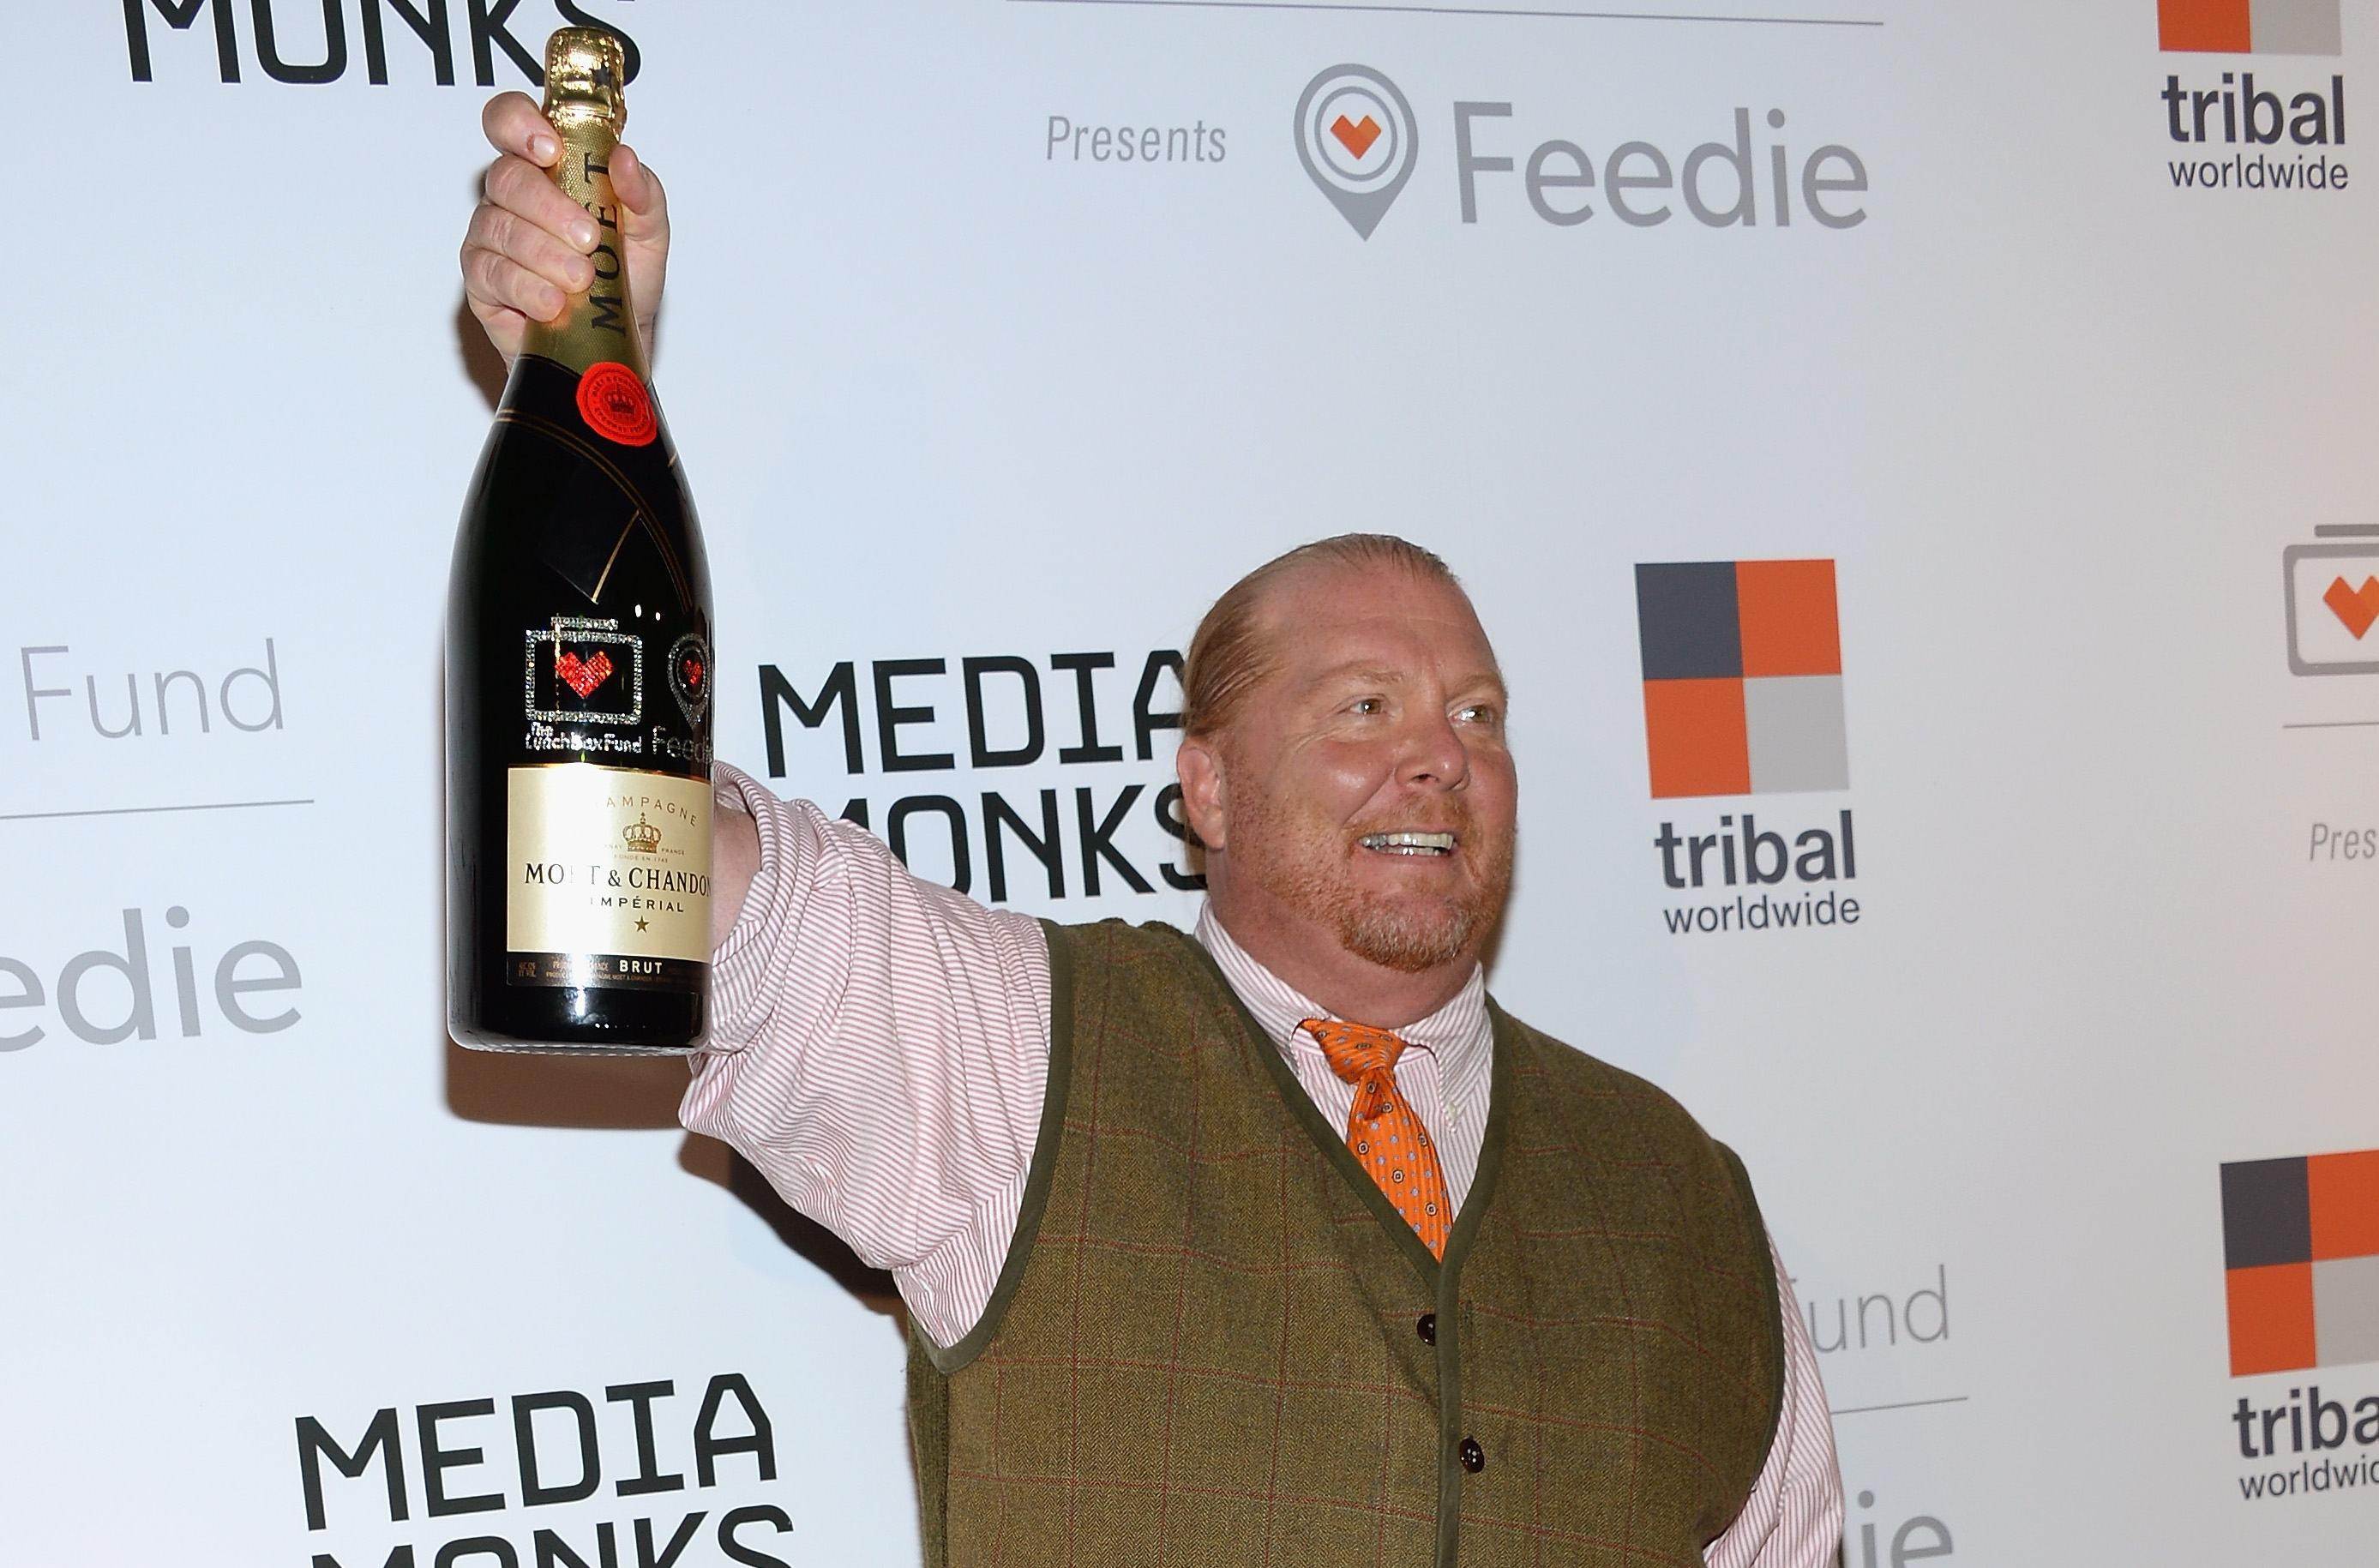 Mario Batali at The Lunchbox Fund Fall Fete And Feedie App Launch - Arrivals